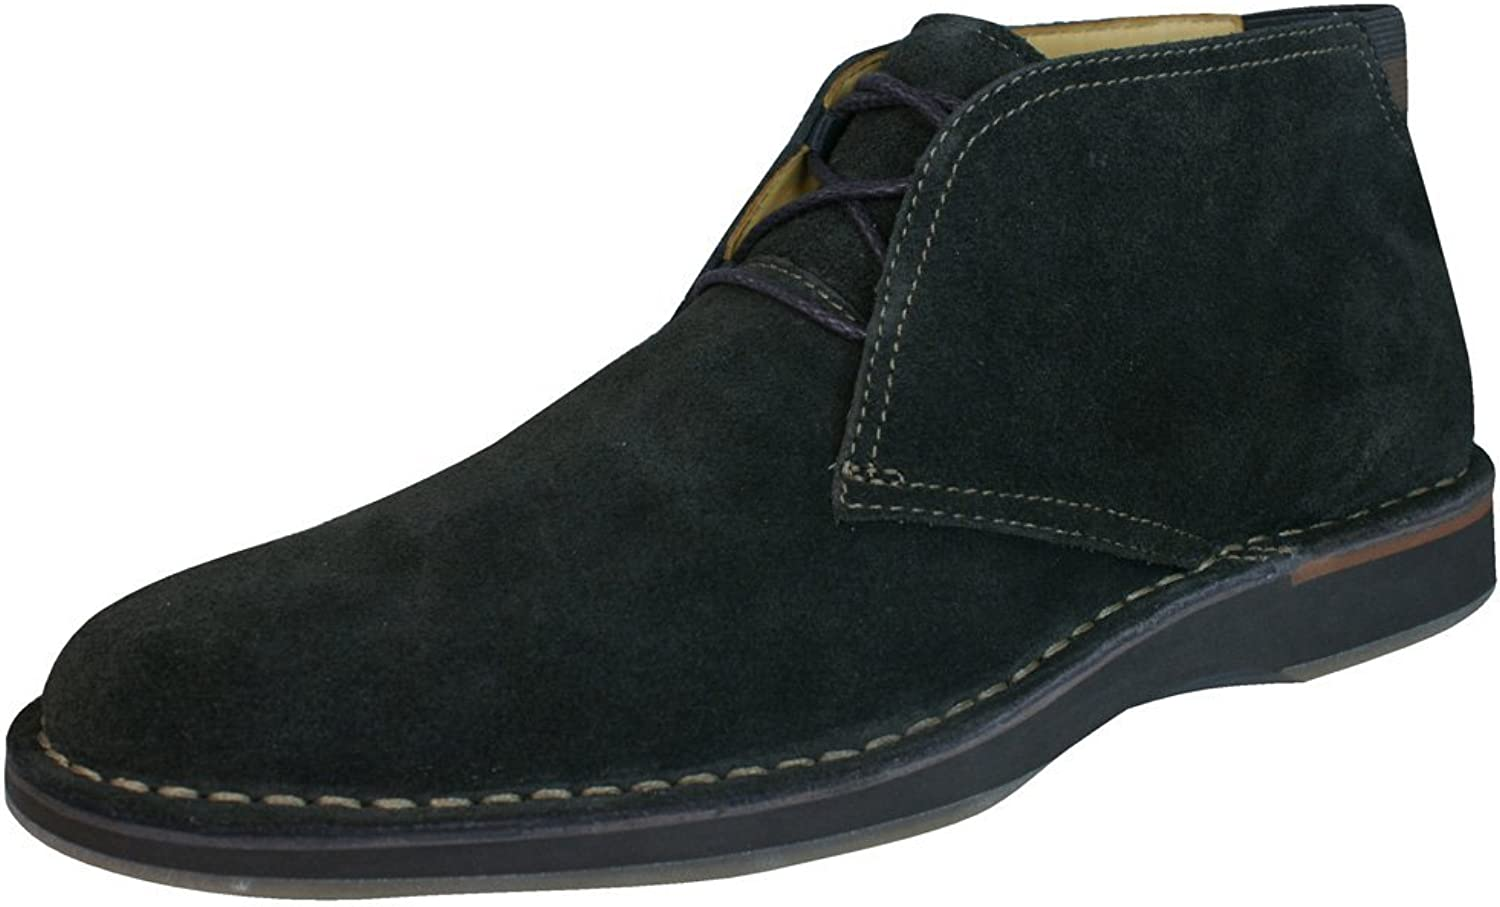 Sperry gold Cup Norfolk Chukka ASV Mens Suede Boots shoes